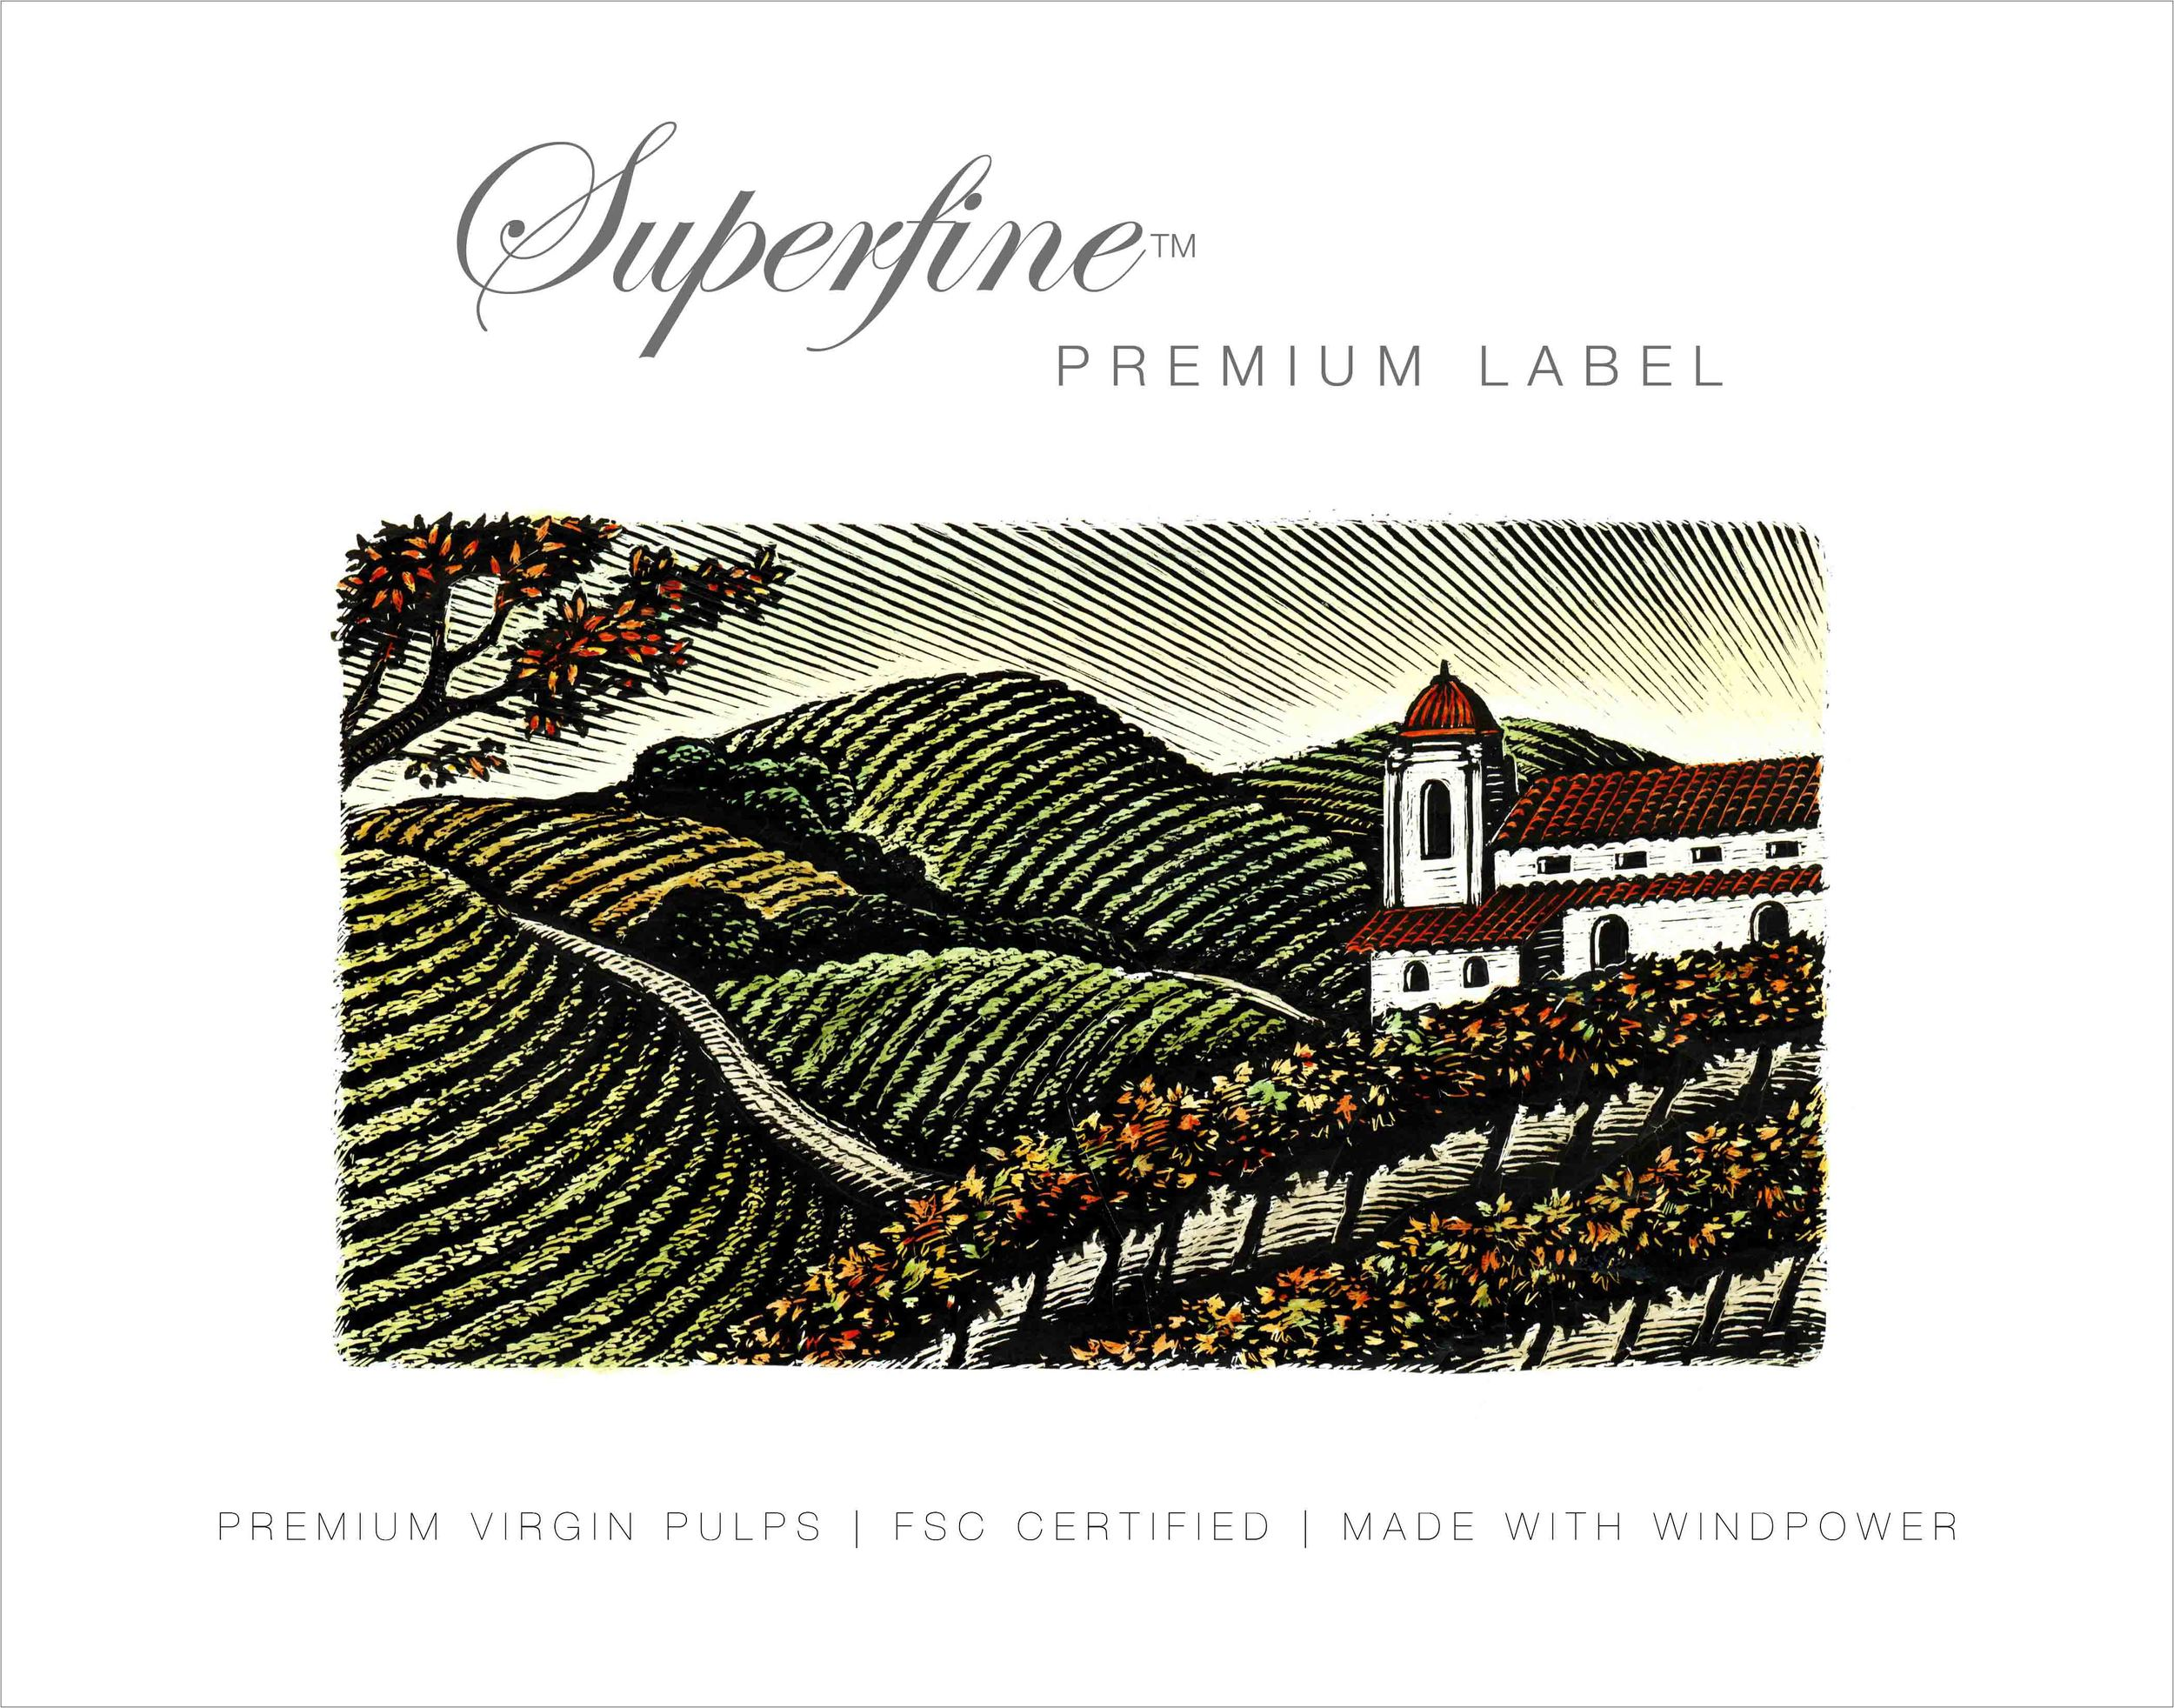 superfine premium label.jpg